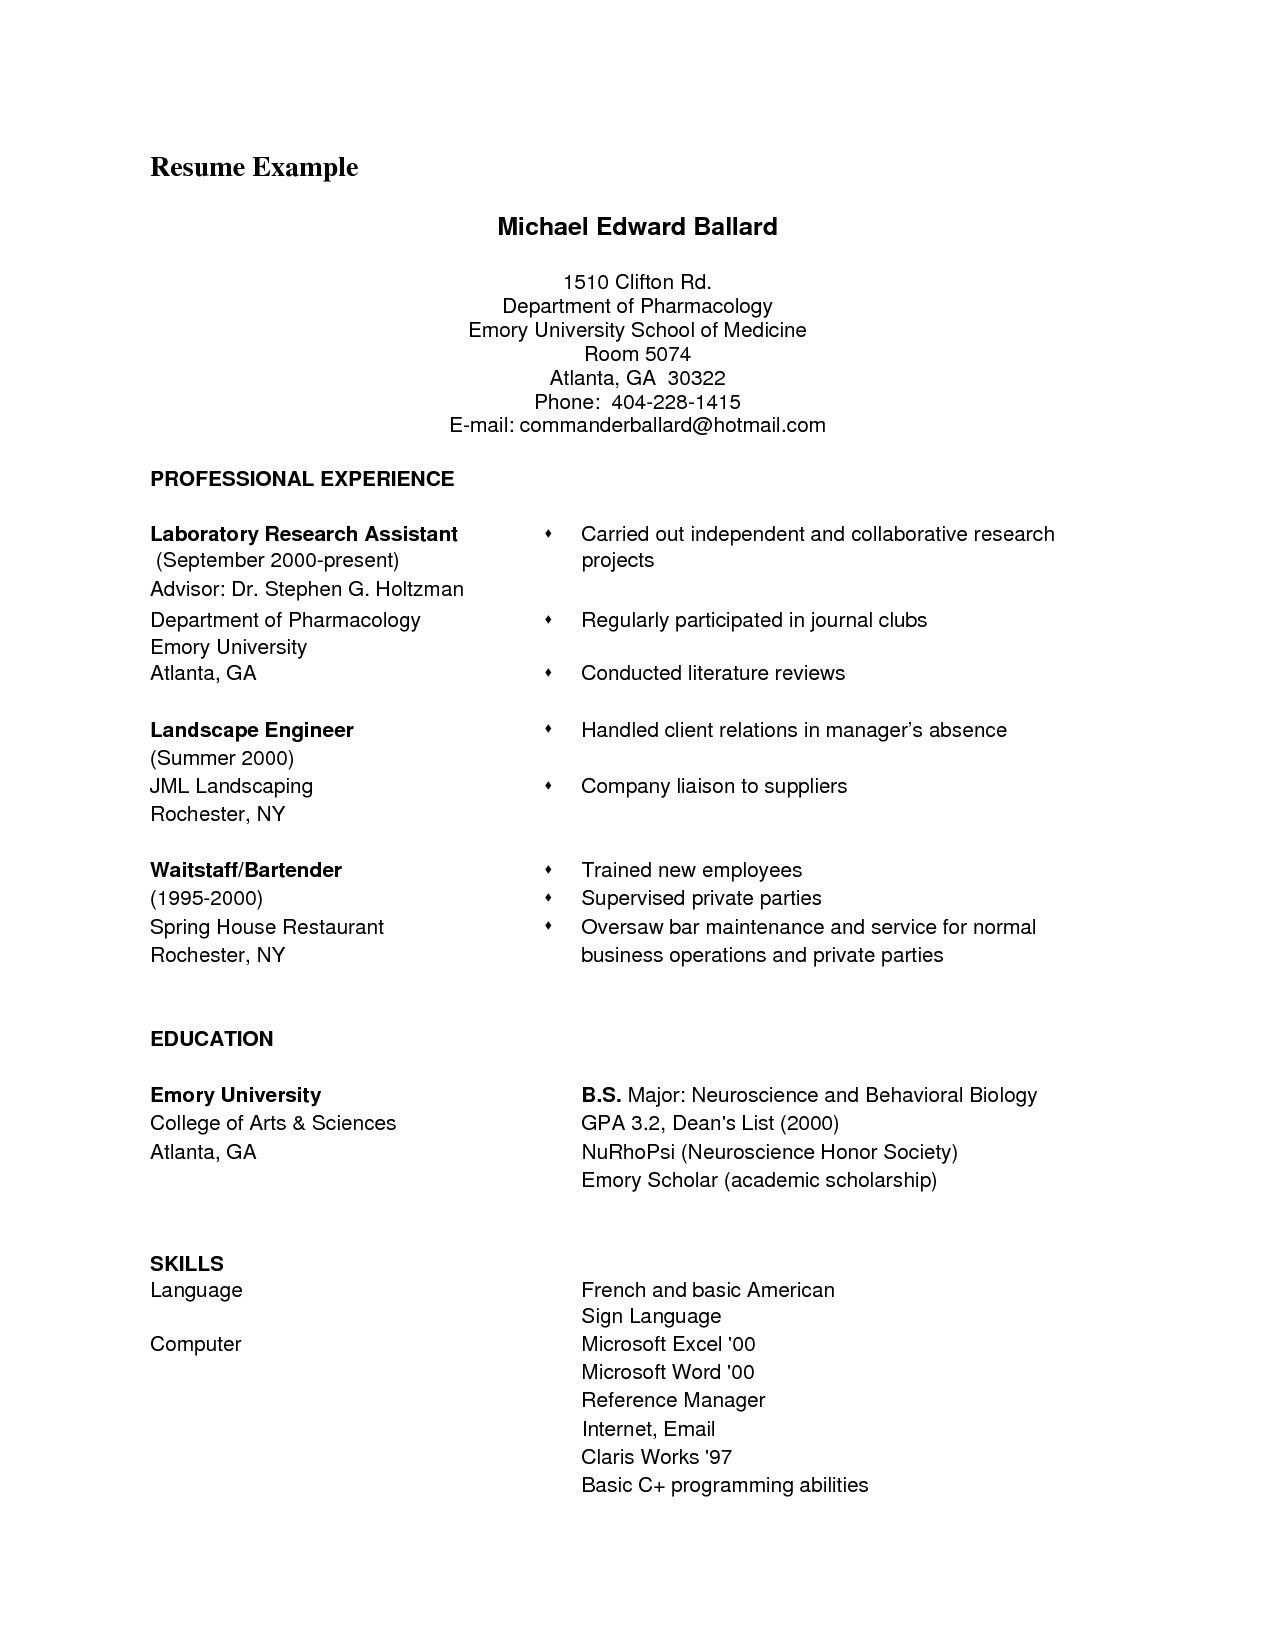 Science Resume Template - Classic Resume Templates ¢Ë†Å¡ Powerpoint Templates for Biology New